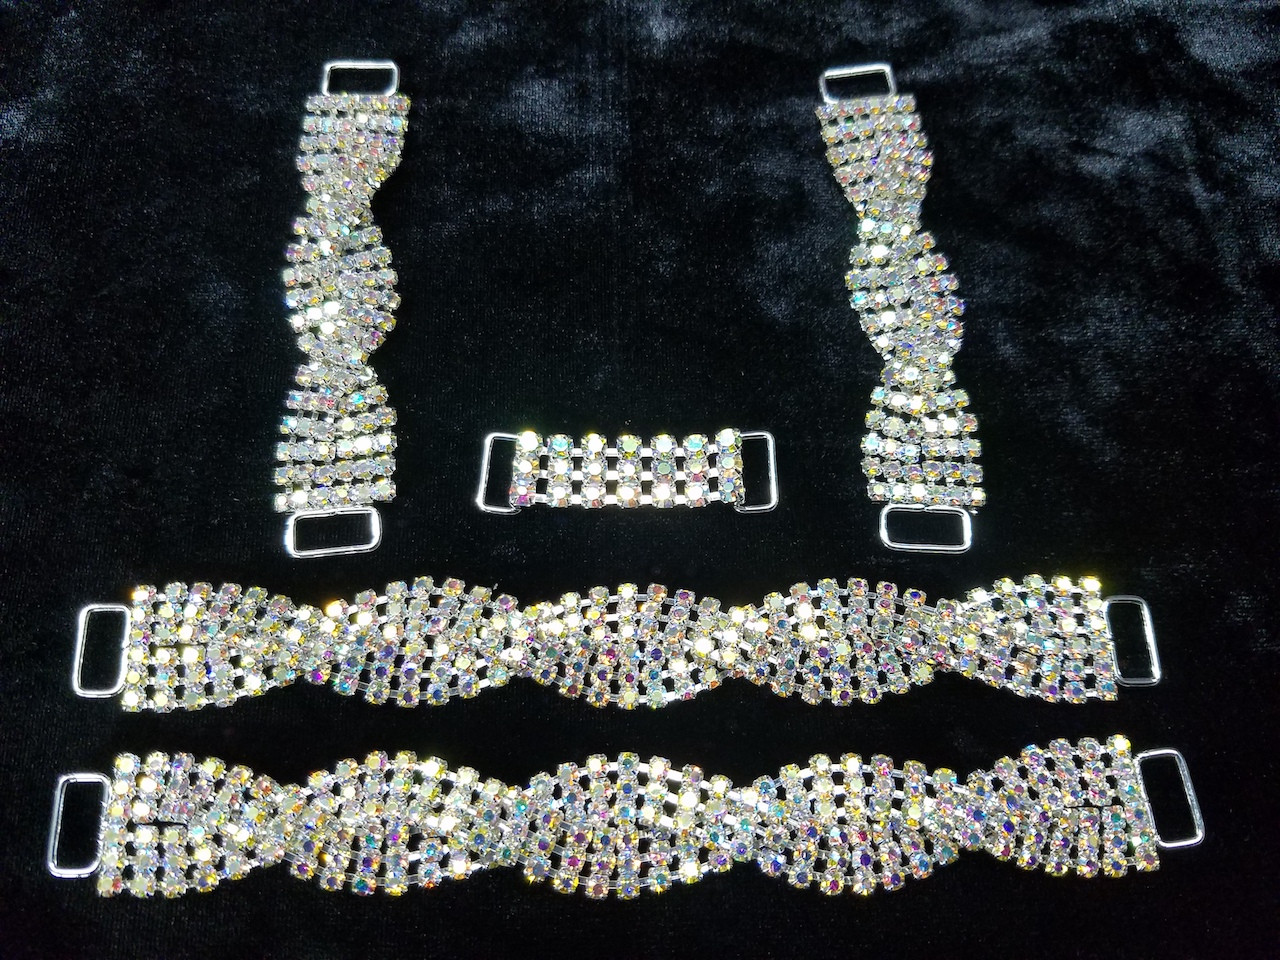 Set C, Silver with clear aurora borealis crystals, $75.00